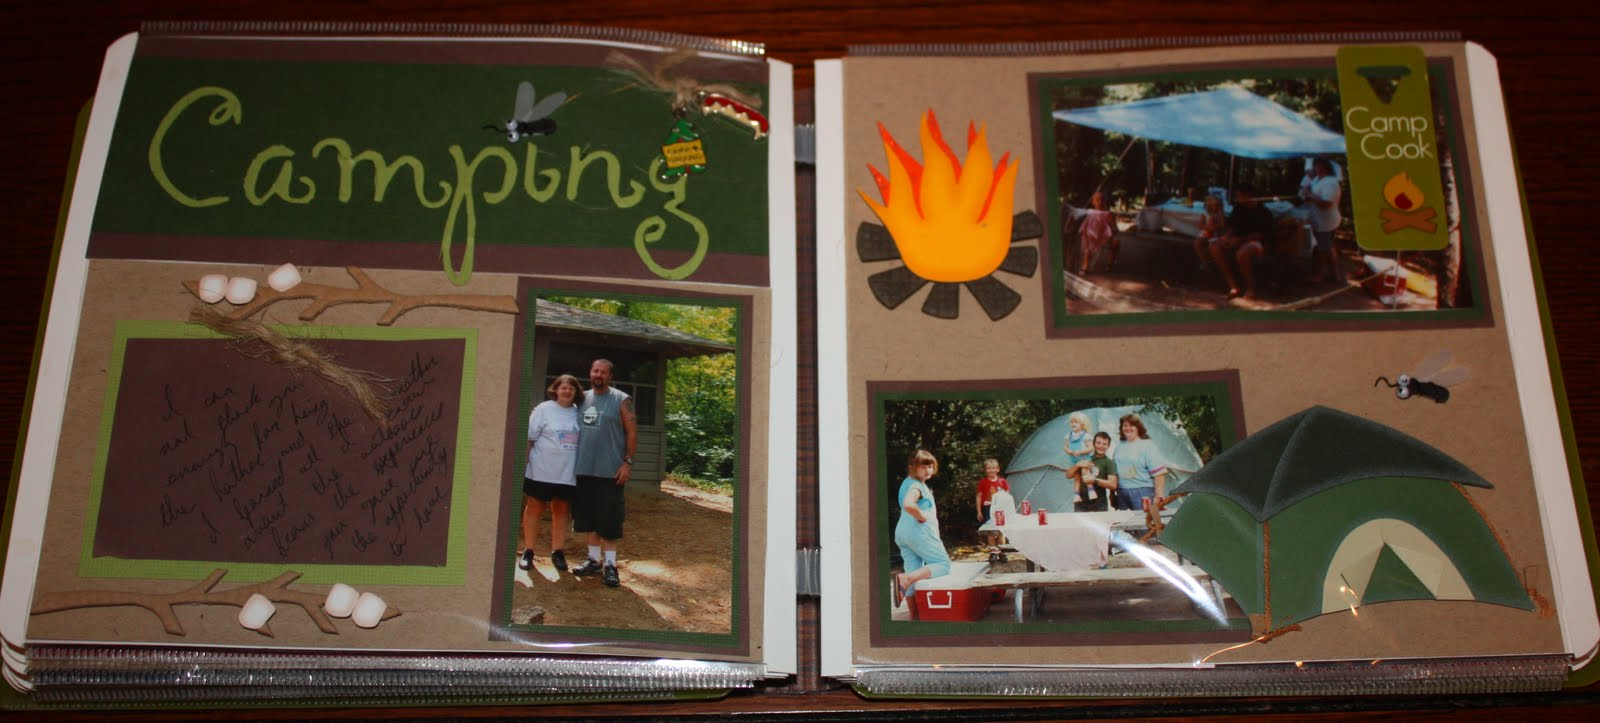 Scrapbook ideas words - You Will Not Find This In My Book These Experiences Are Truly A Gift From My Mom To My Brother She Grew Up A City Girl In Dallas With A Sister